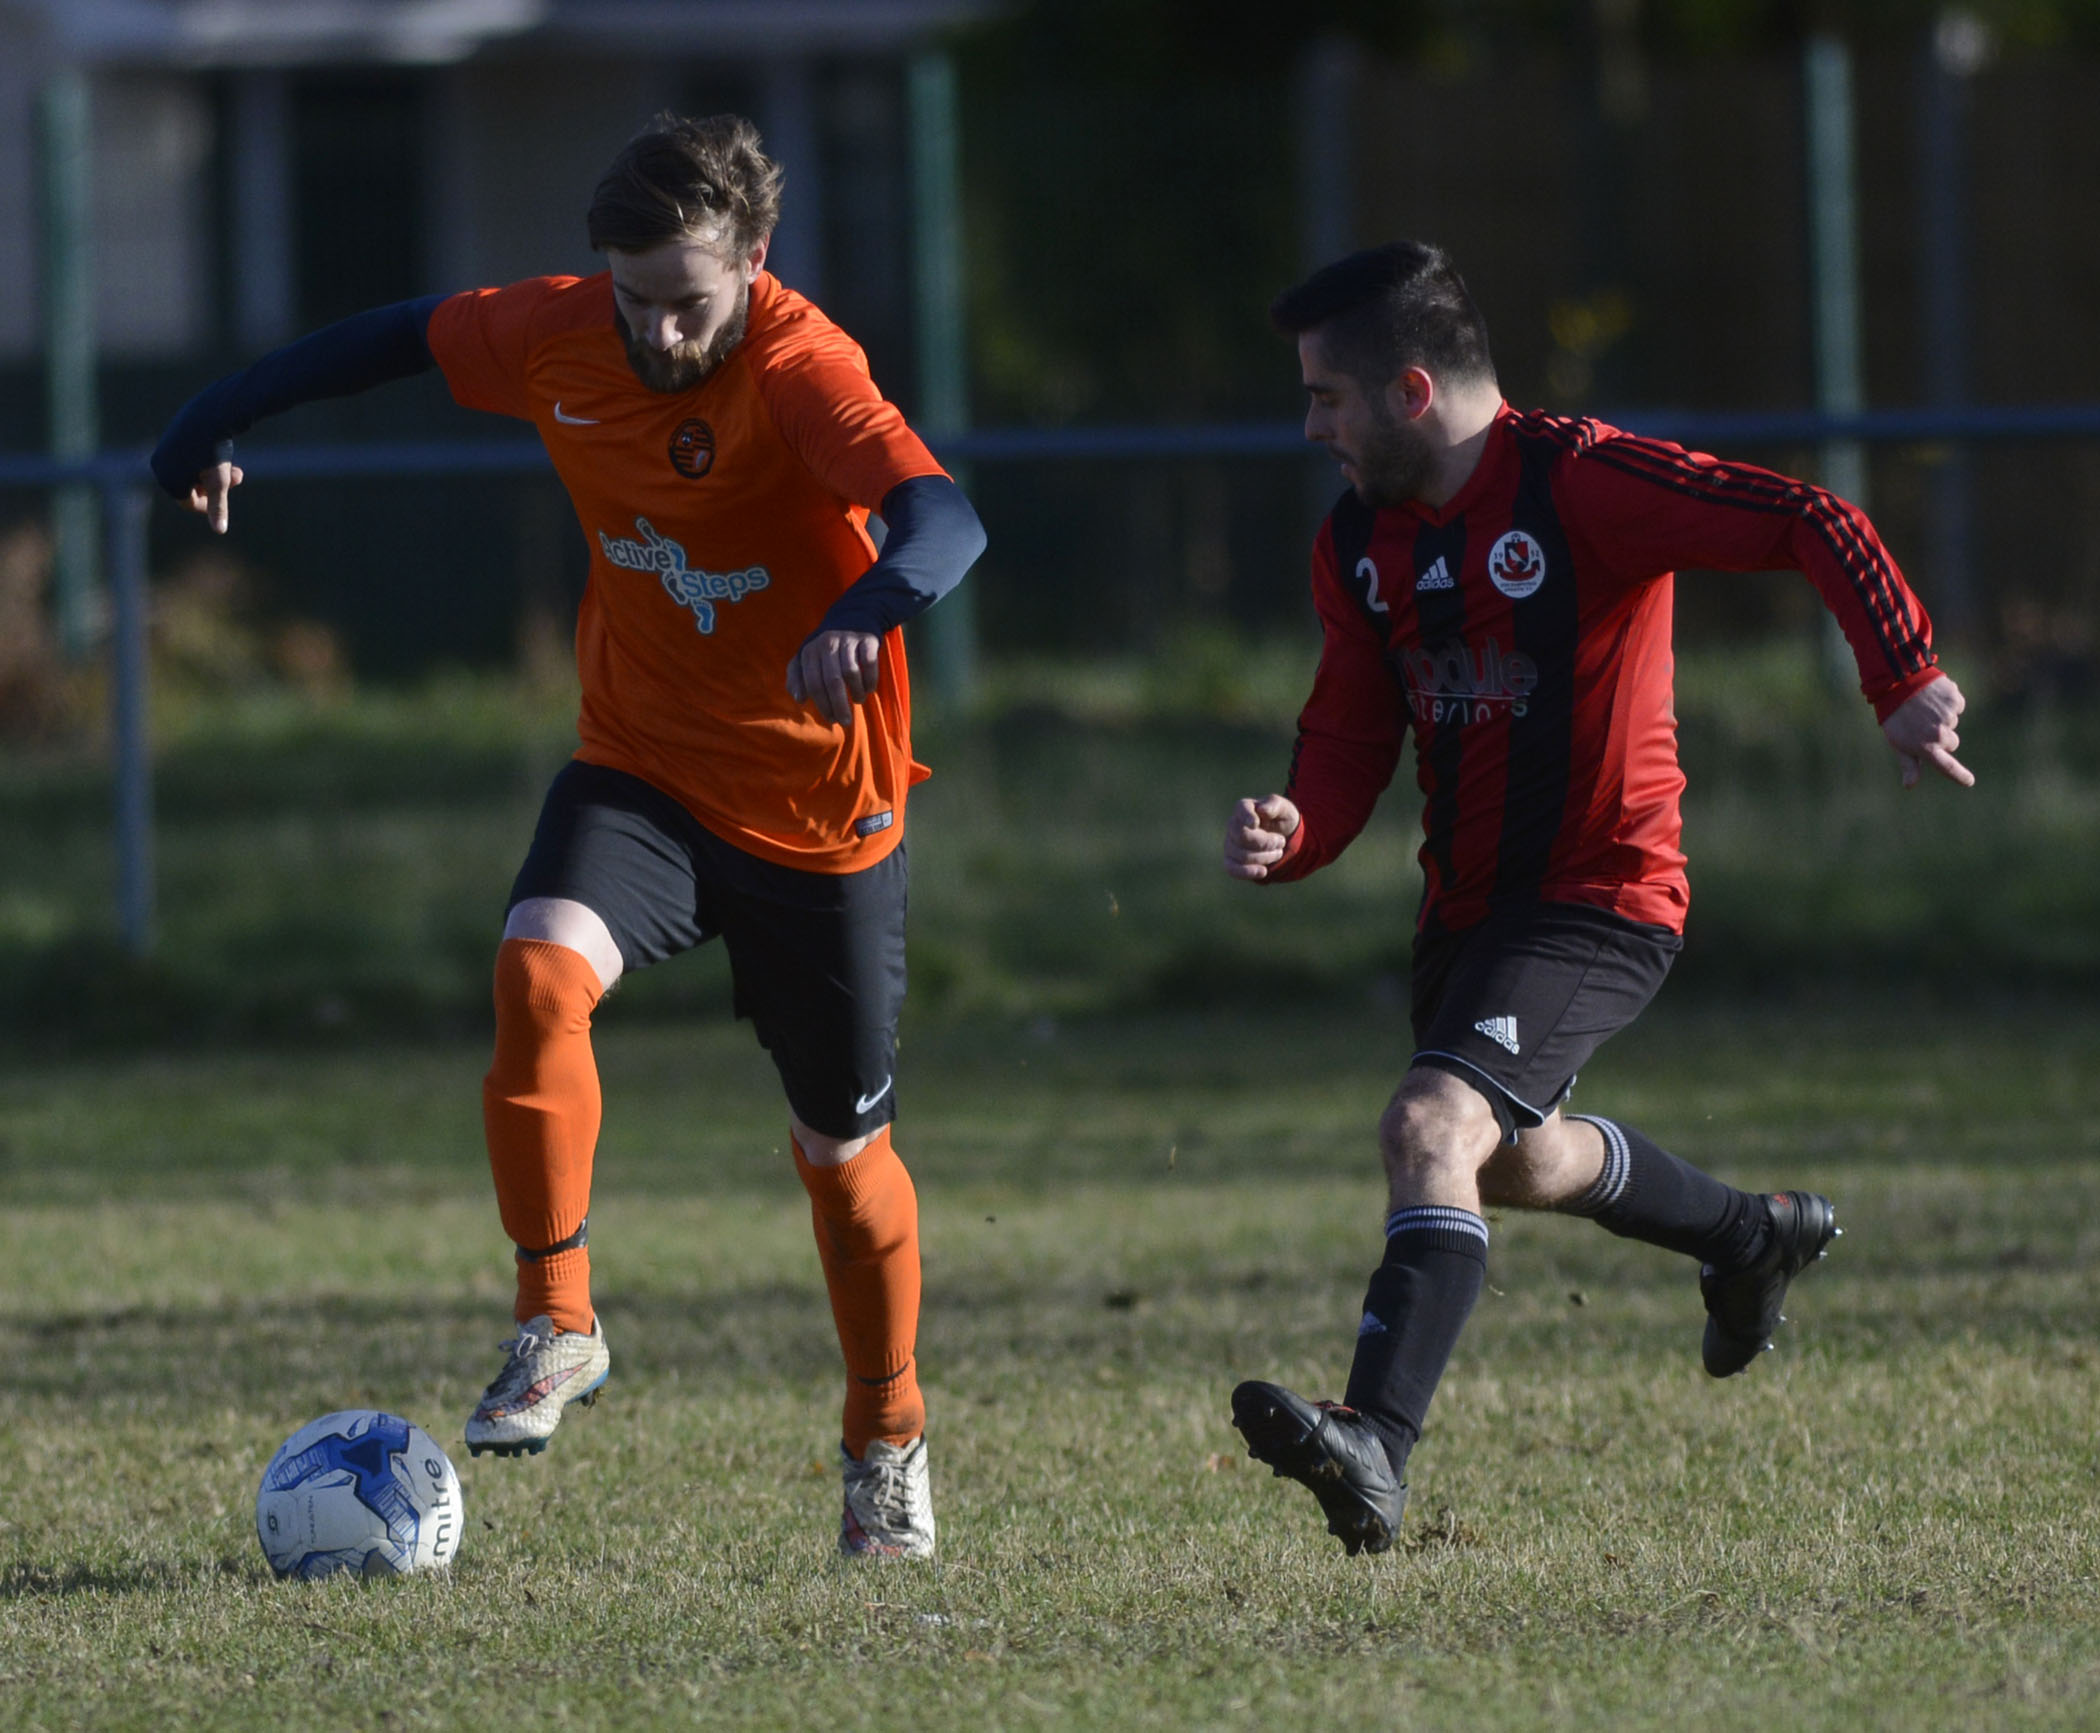 Finchampstead (red/black) crushed Wokingham & Emmbrook 7-0